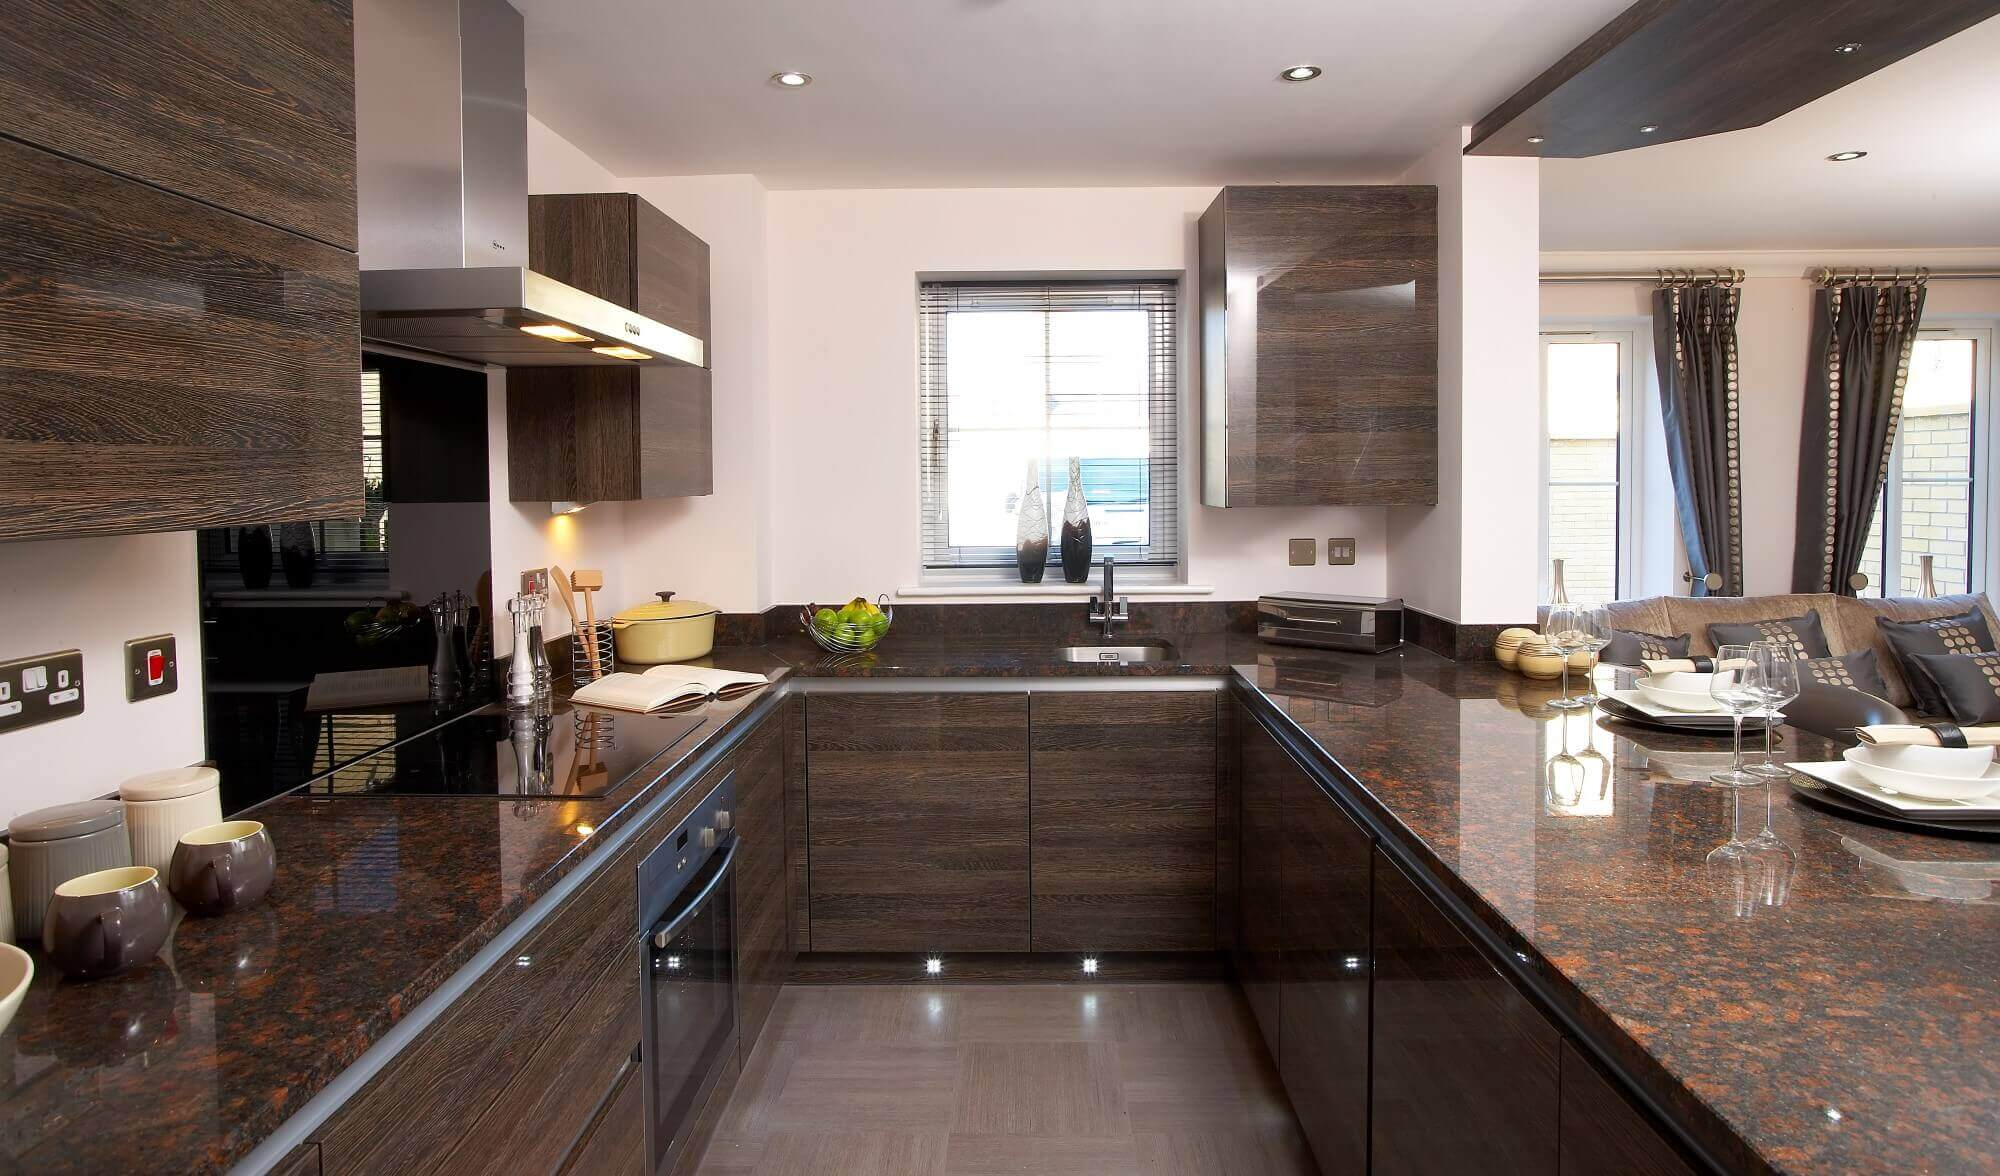 Dark wood cabinets throughout this modern u–shaped kitchen with island stand out in contrast from the ceiling and walls. The real eye catcher here however is the dark brown marble countertops that mesh unbelievably well with the cabinets